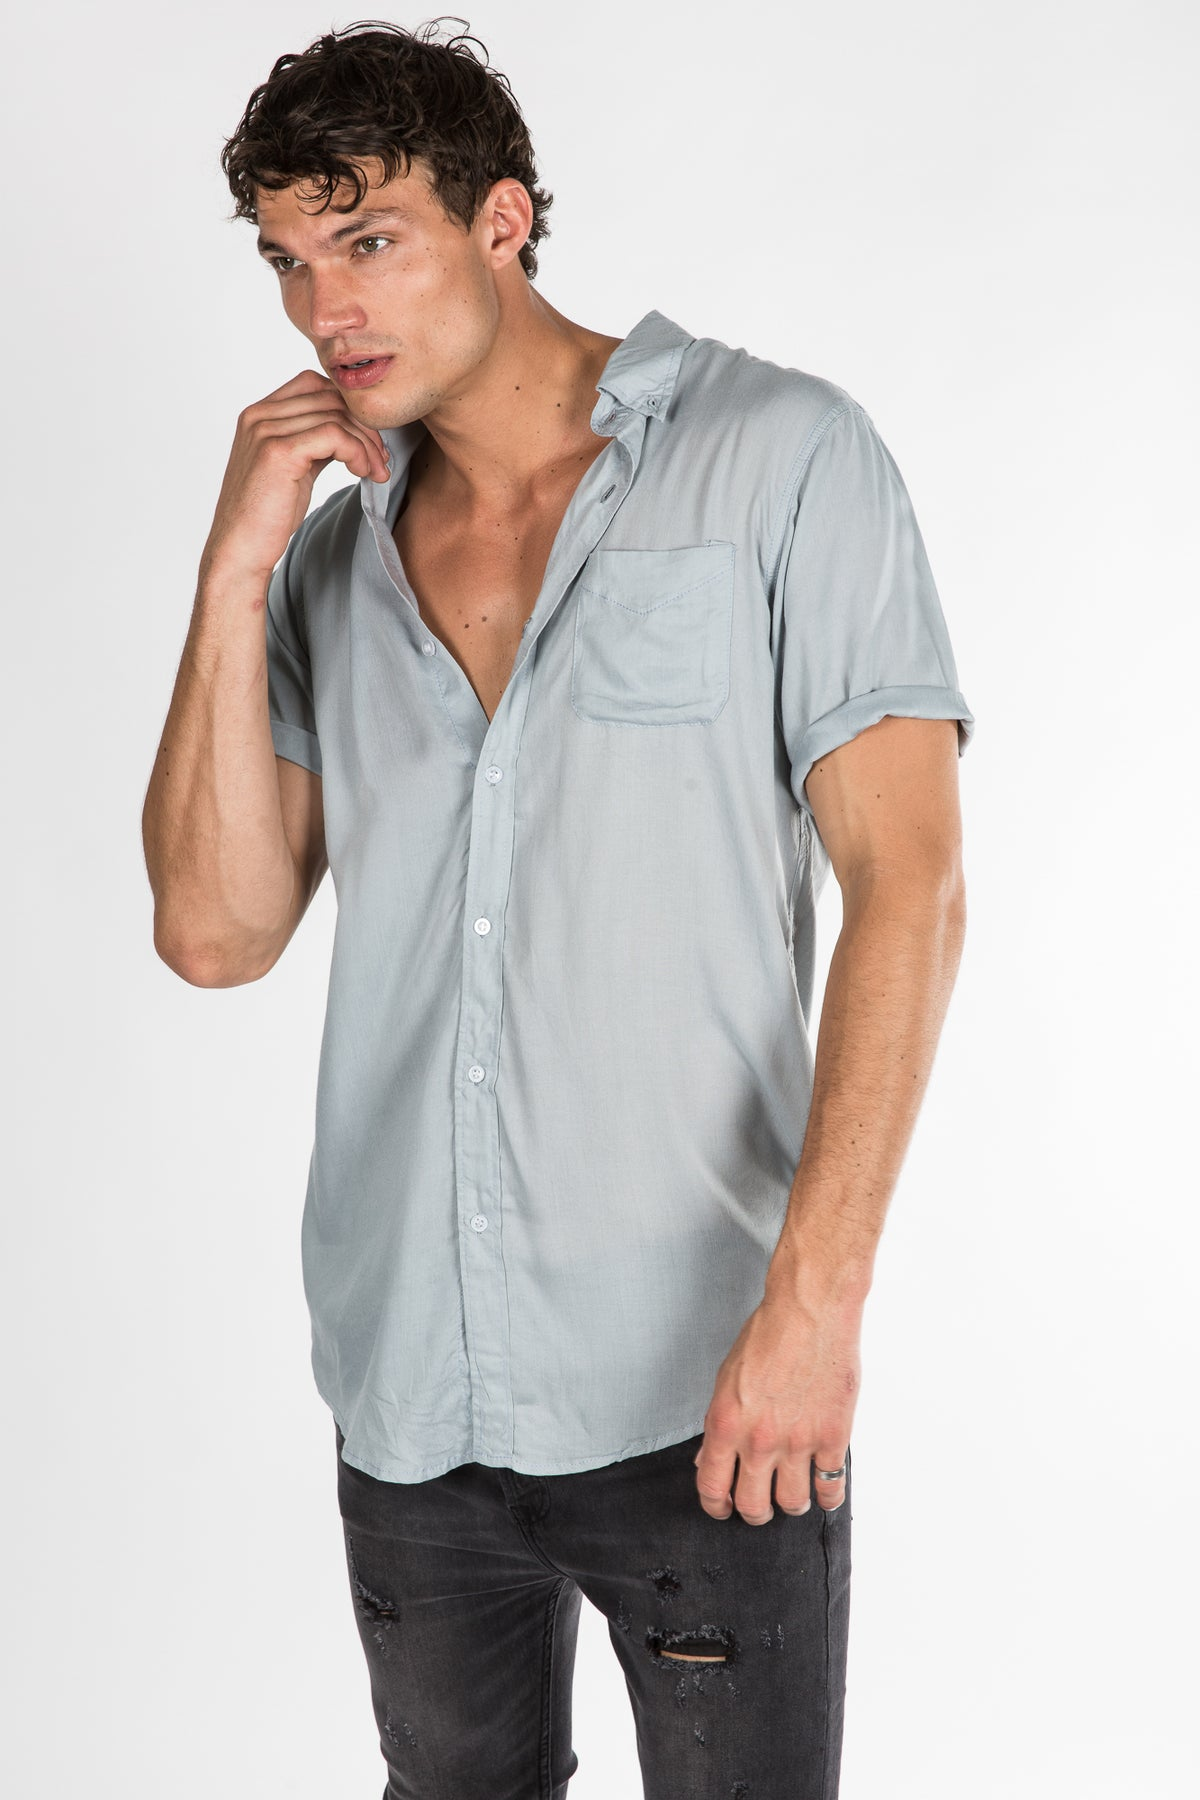 Jack Boating Shirt Grey